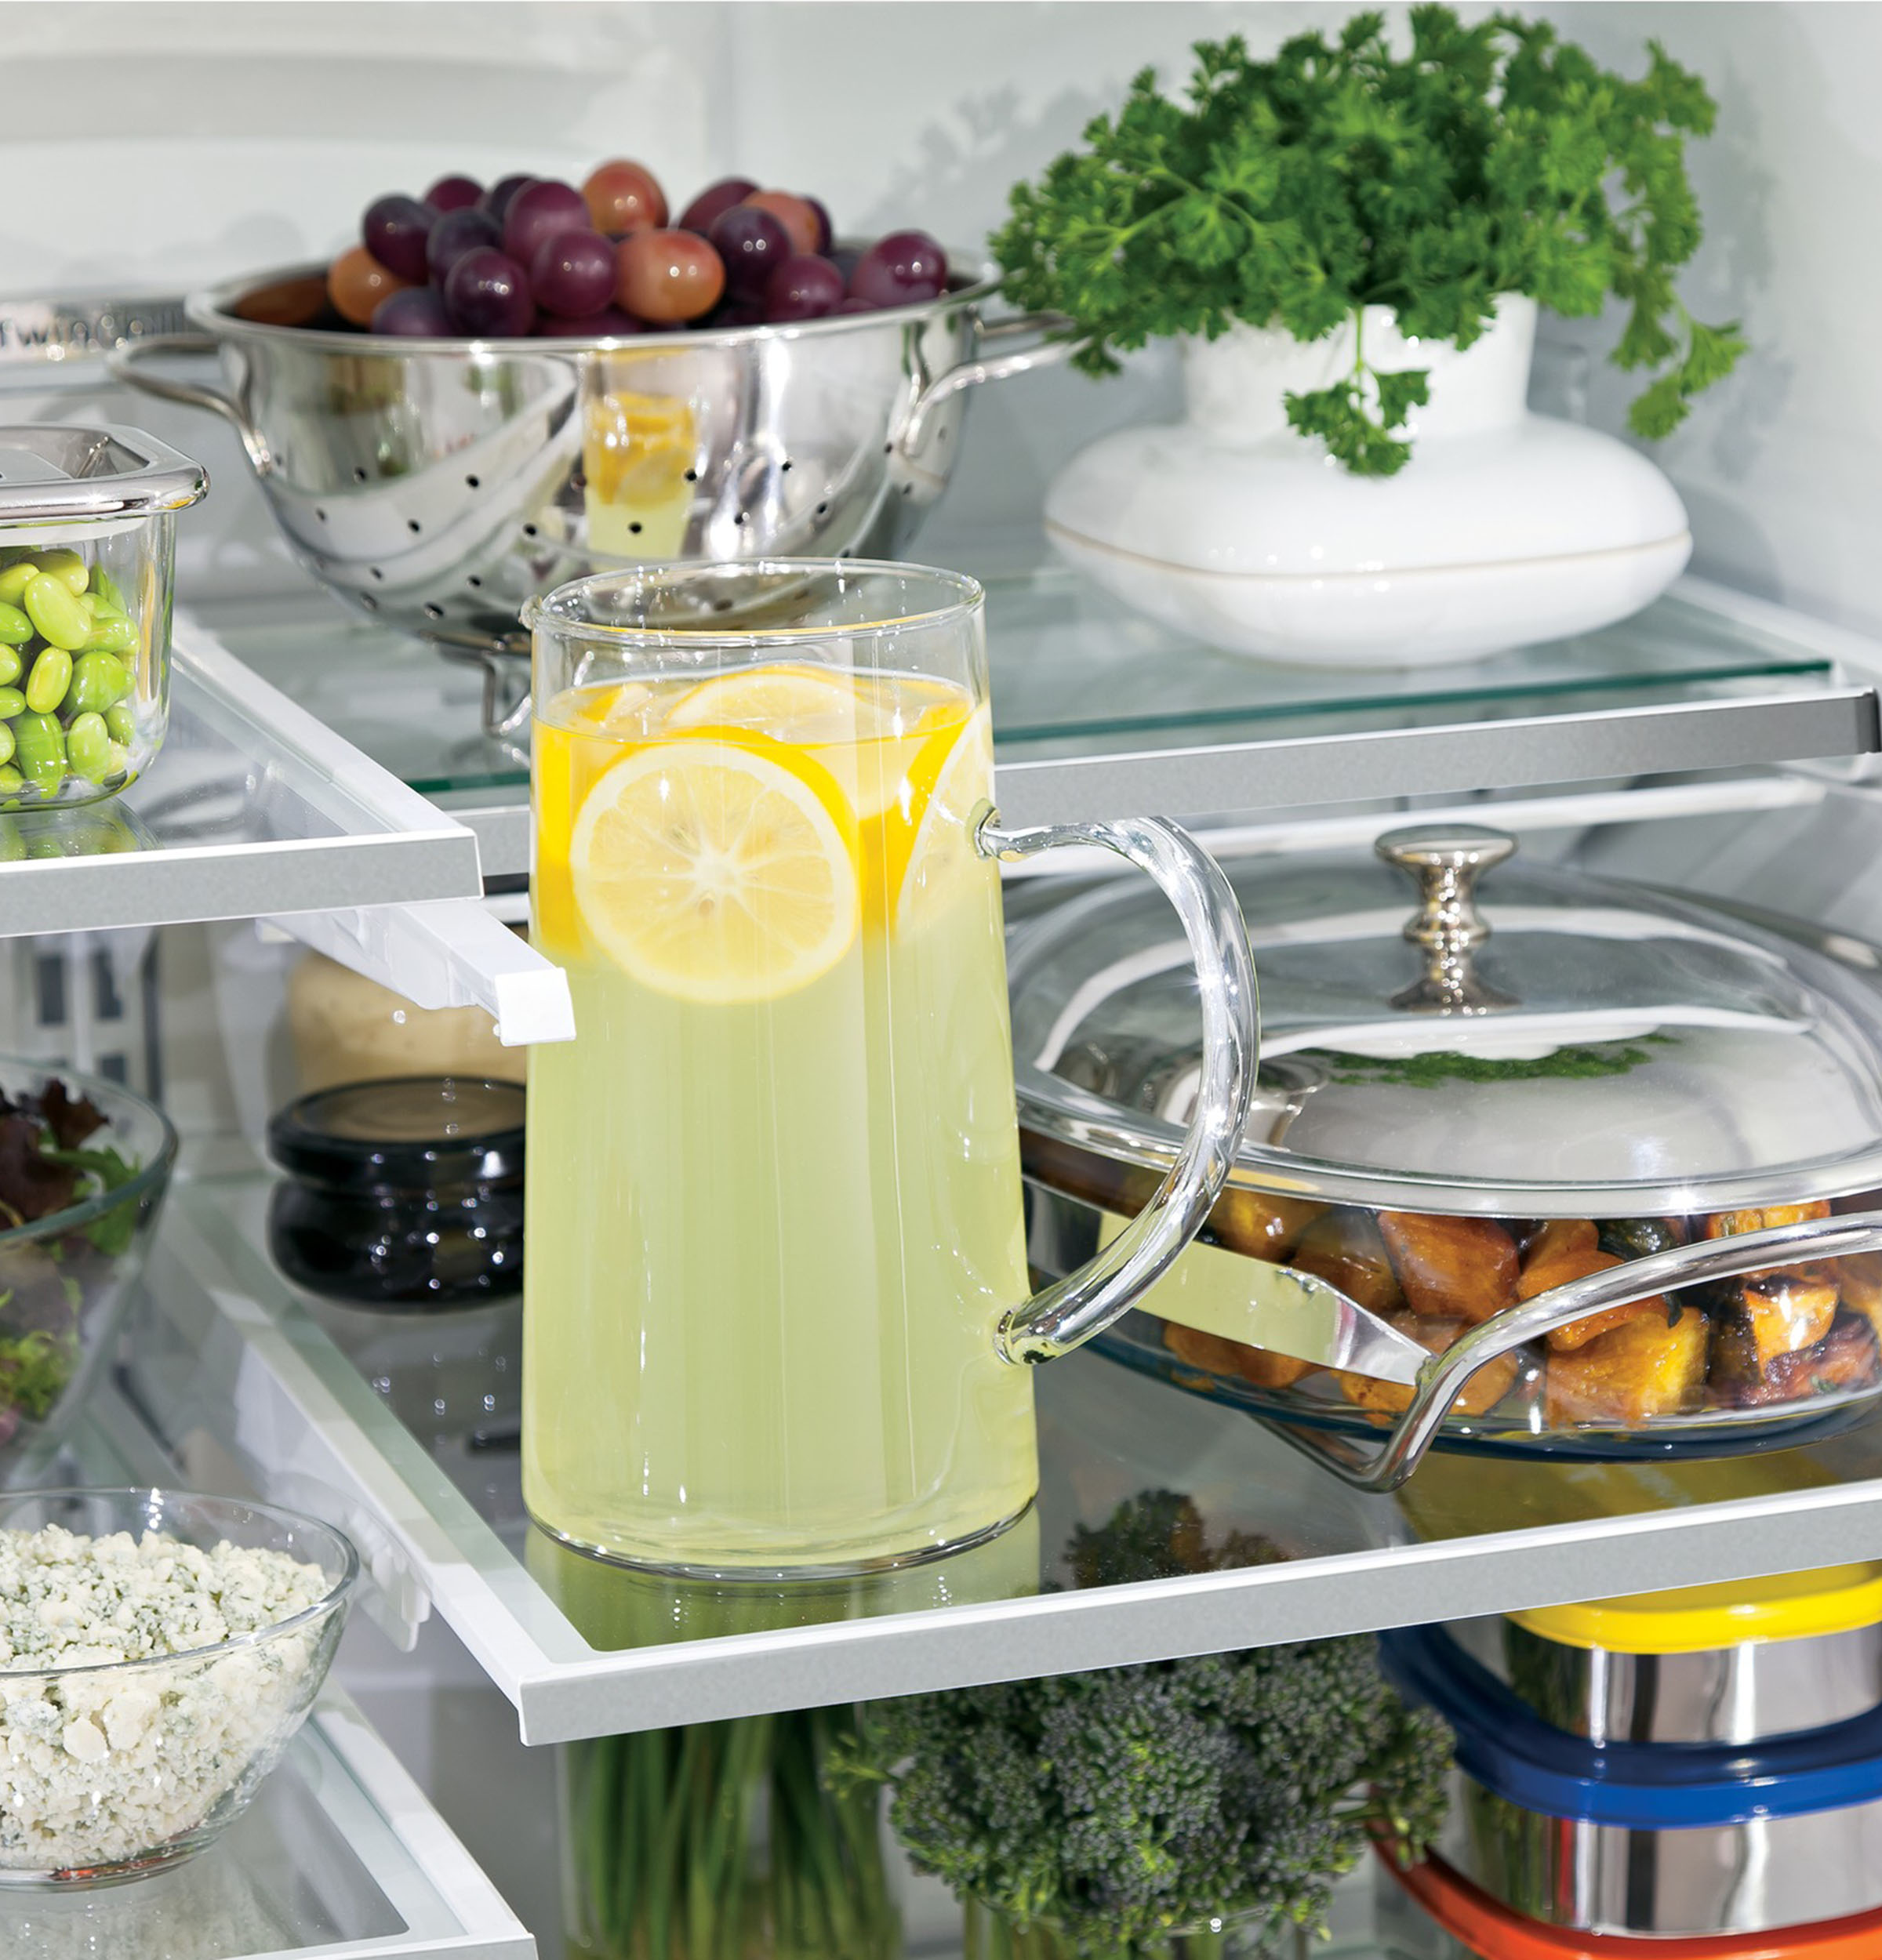 Model: PYE22KBLTS | GE Profile GE Profile™ Series ENERGY STAR® 22.1 Cu. Ft. Counter-Depth French-Door Refrigerator with Hands-Free AutoFill